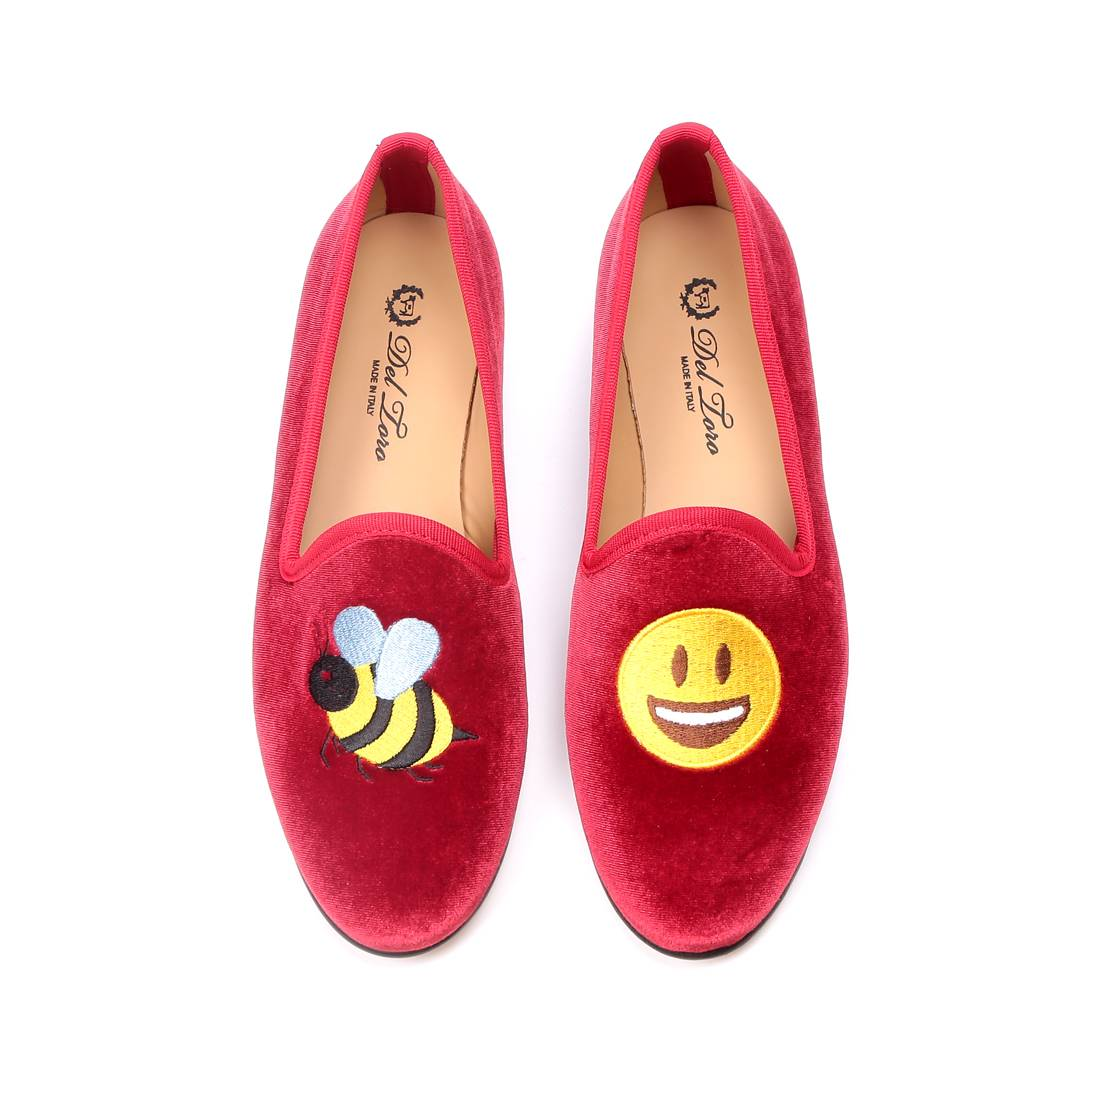 Sporting a great message and looking hot in velvet, these super happy  vibrant slippers will bring joy to your feet no matter what you choose to  wear them ...